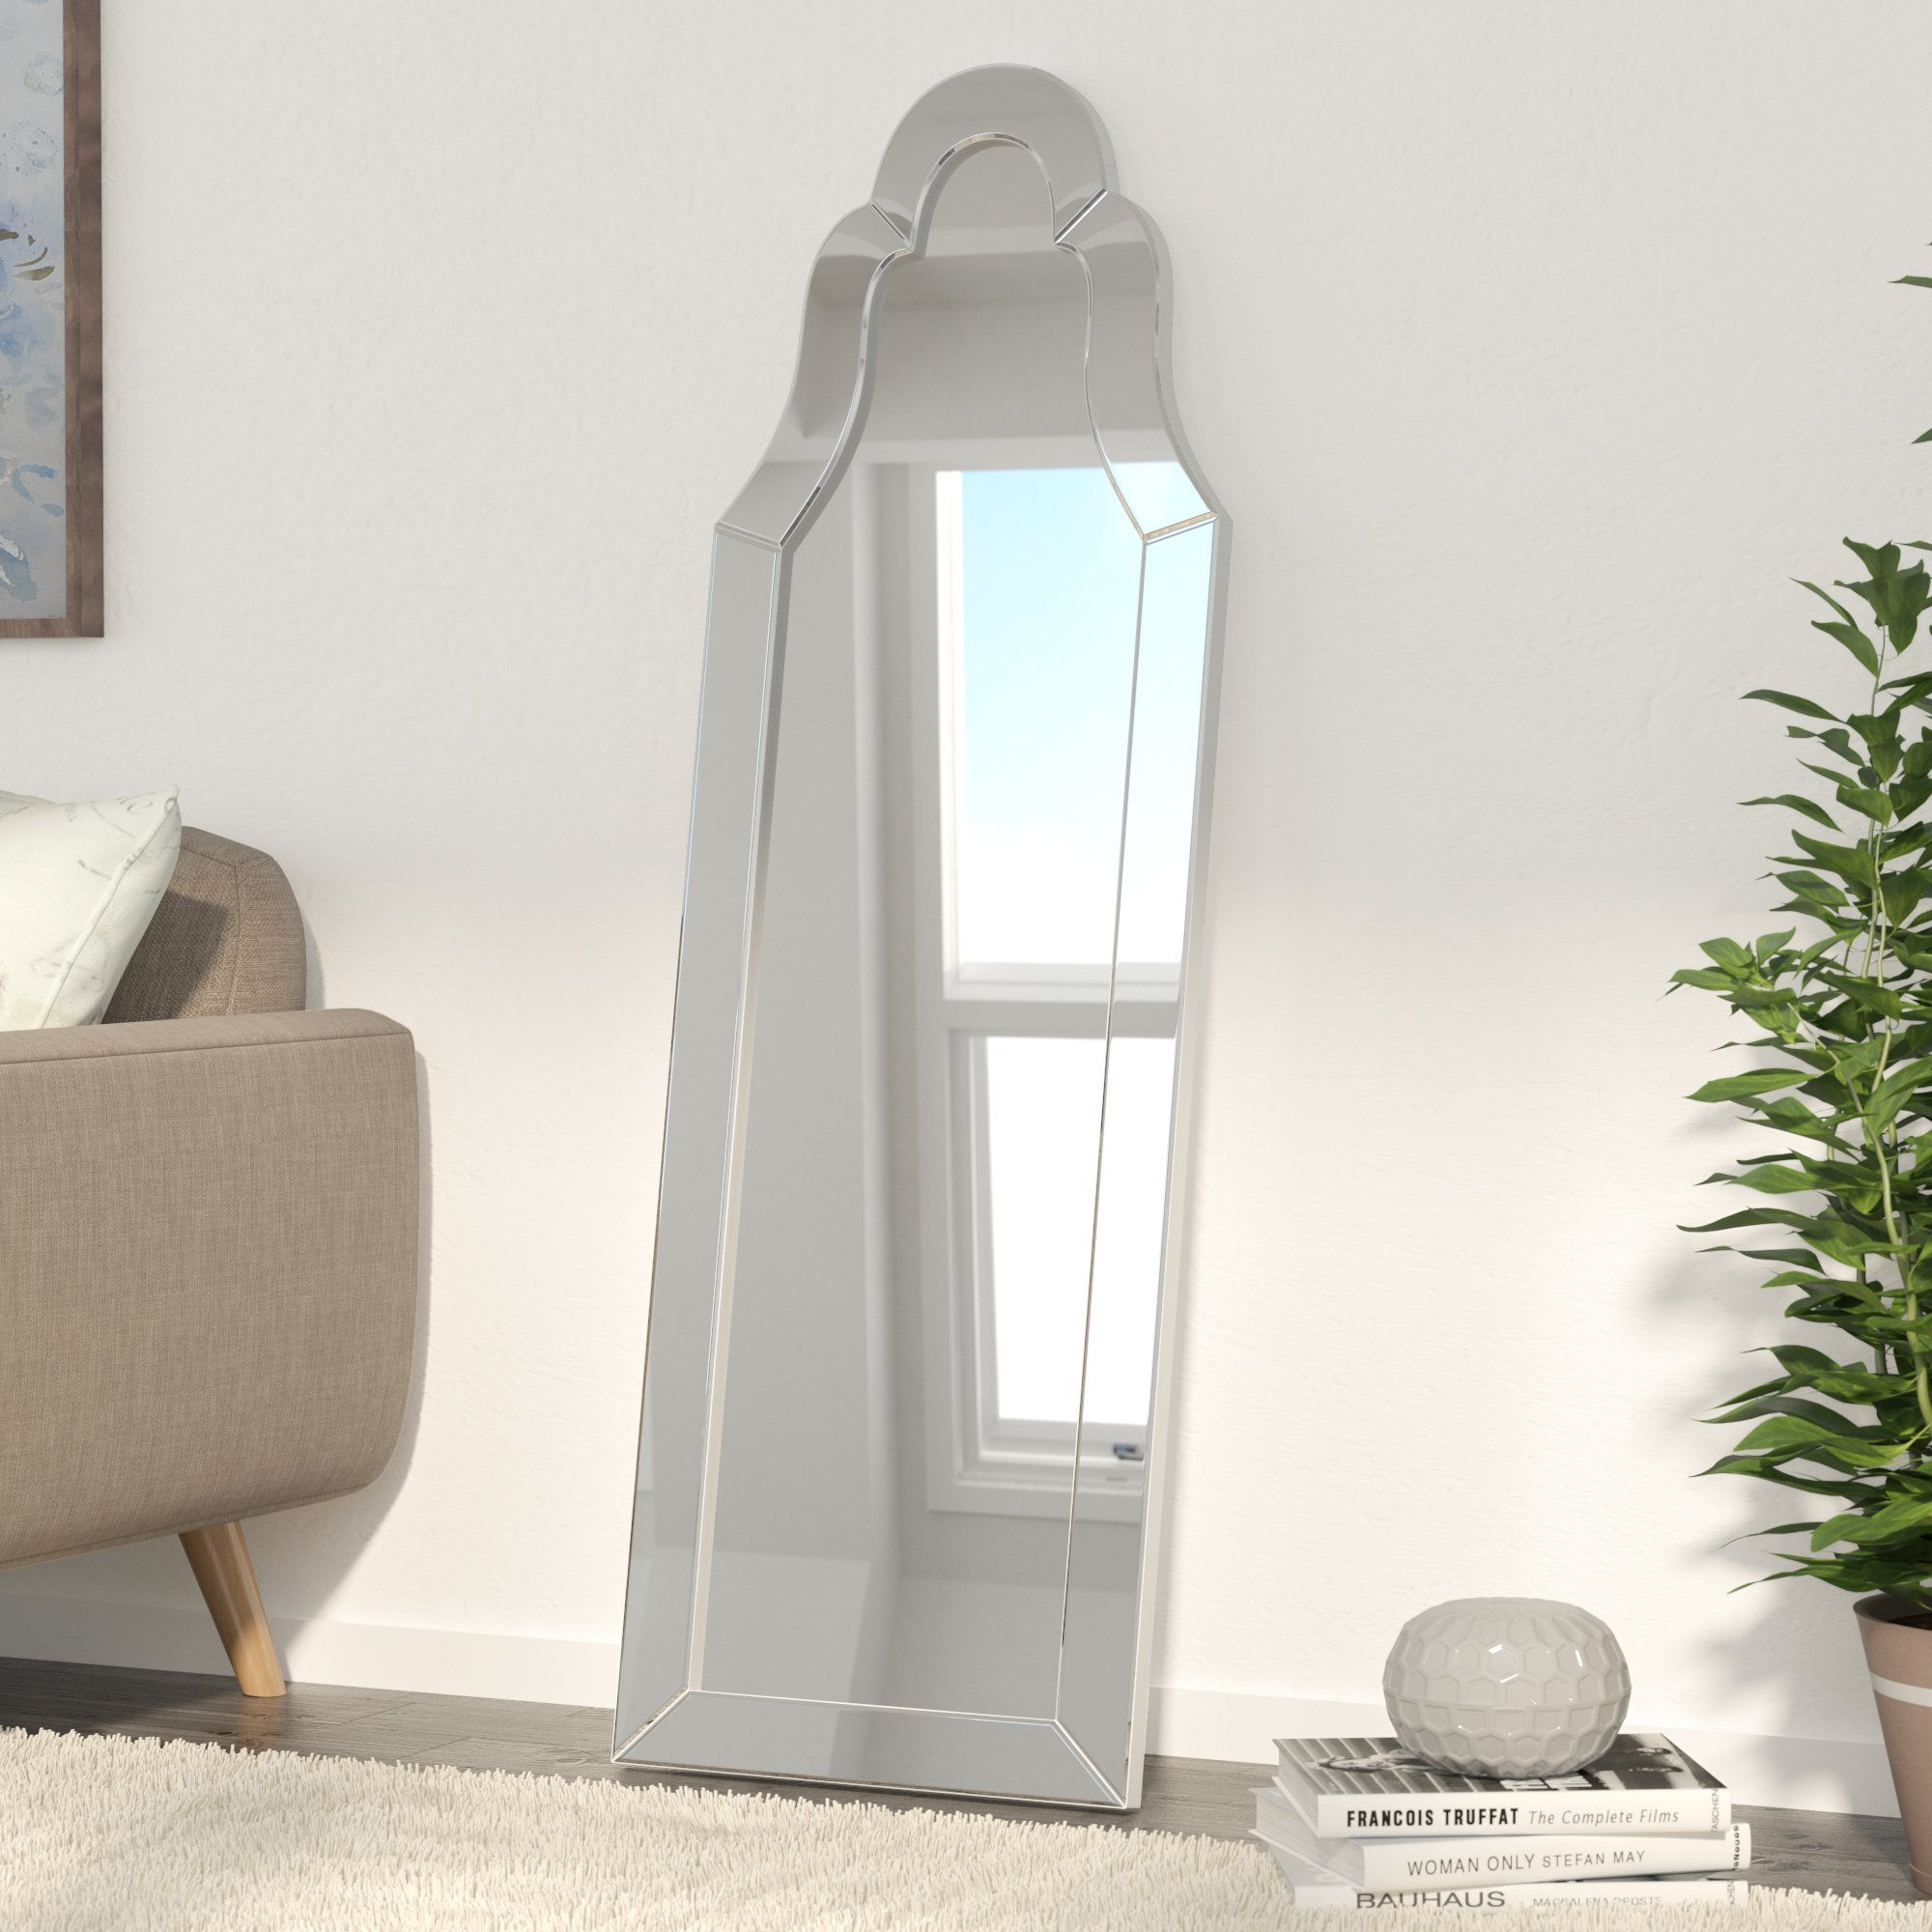 Lawson Arched Floor Mirror   Products   Pinterest   Floor mirrors ...